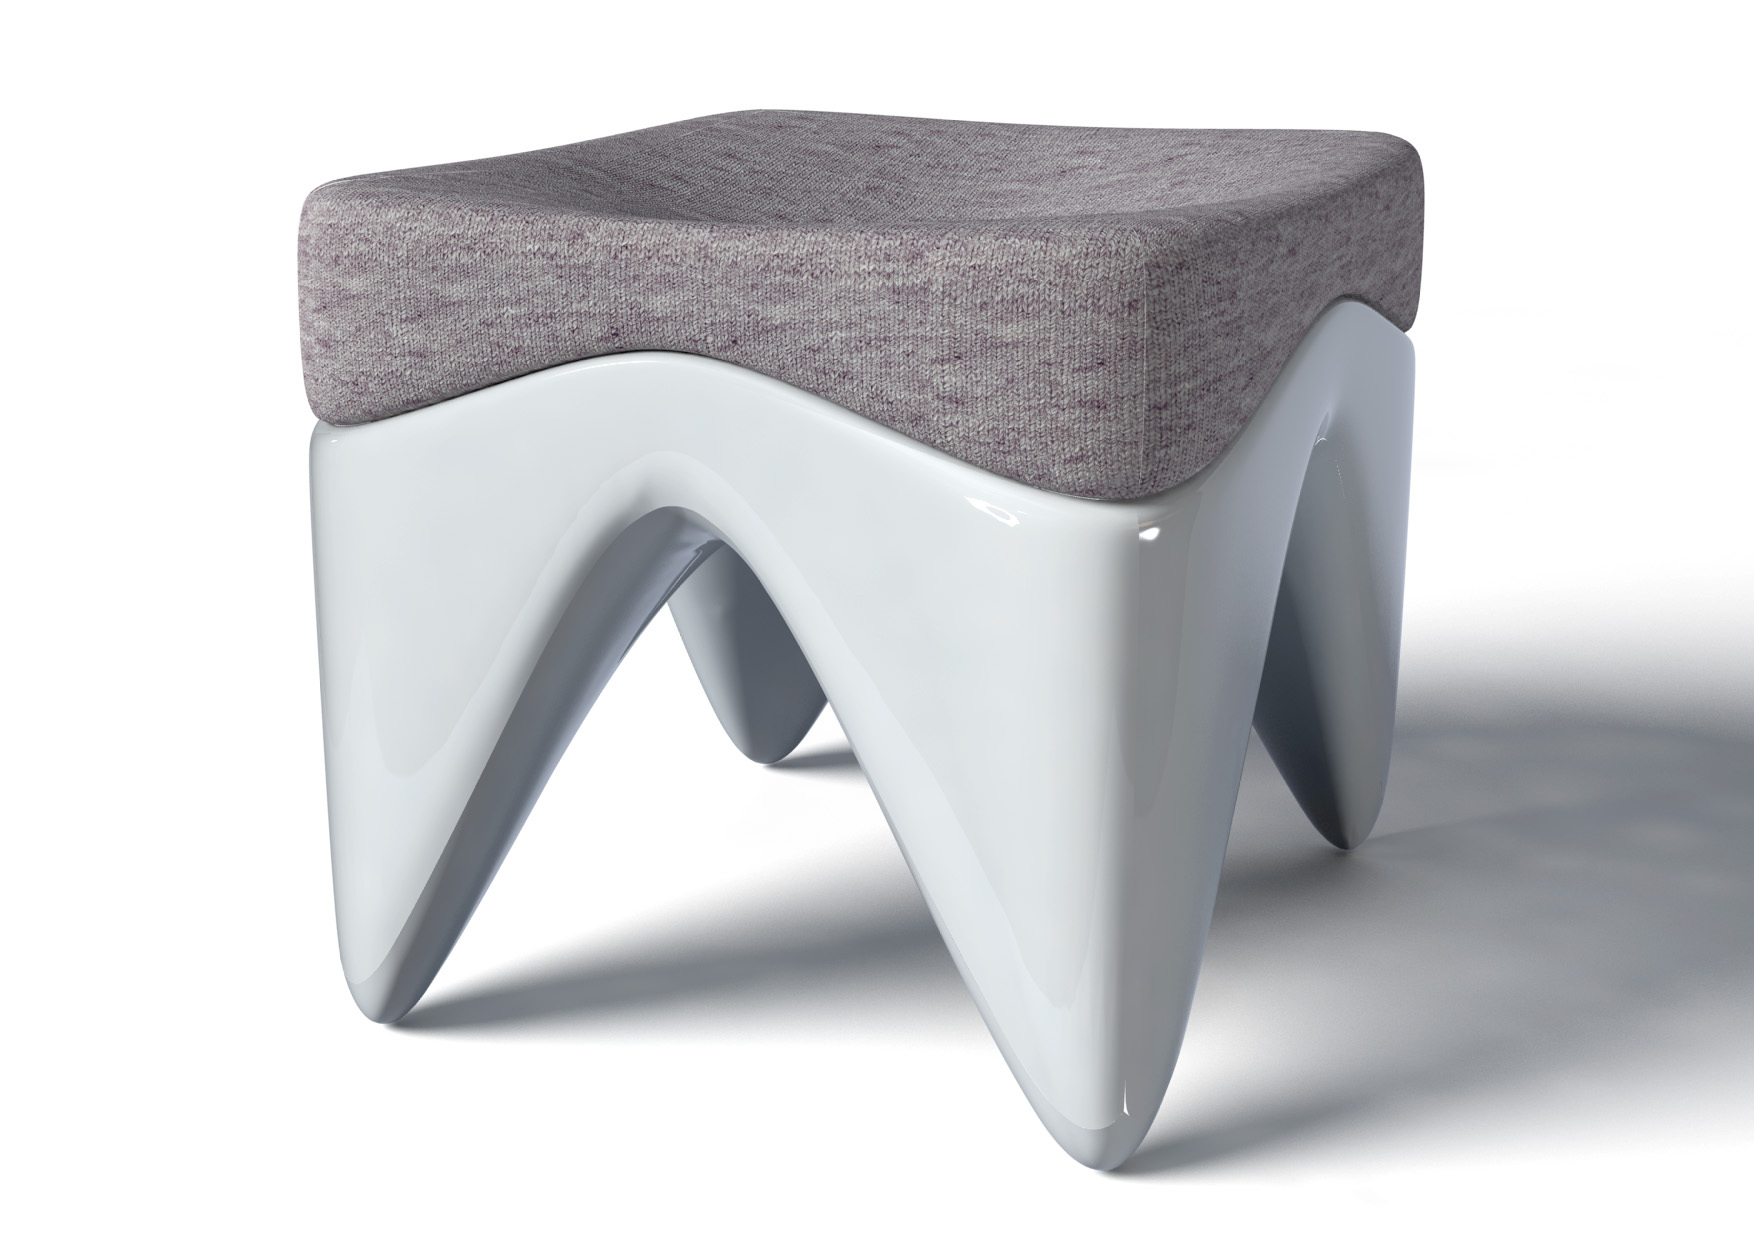 Tooth stool autodesk online gallery